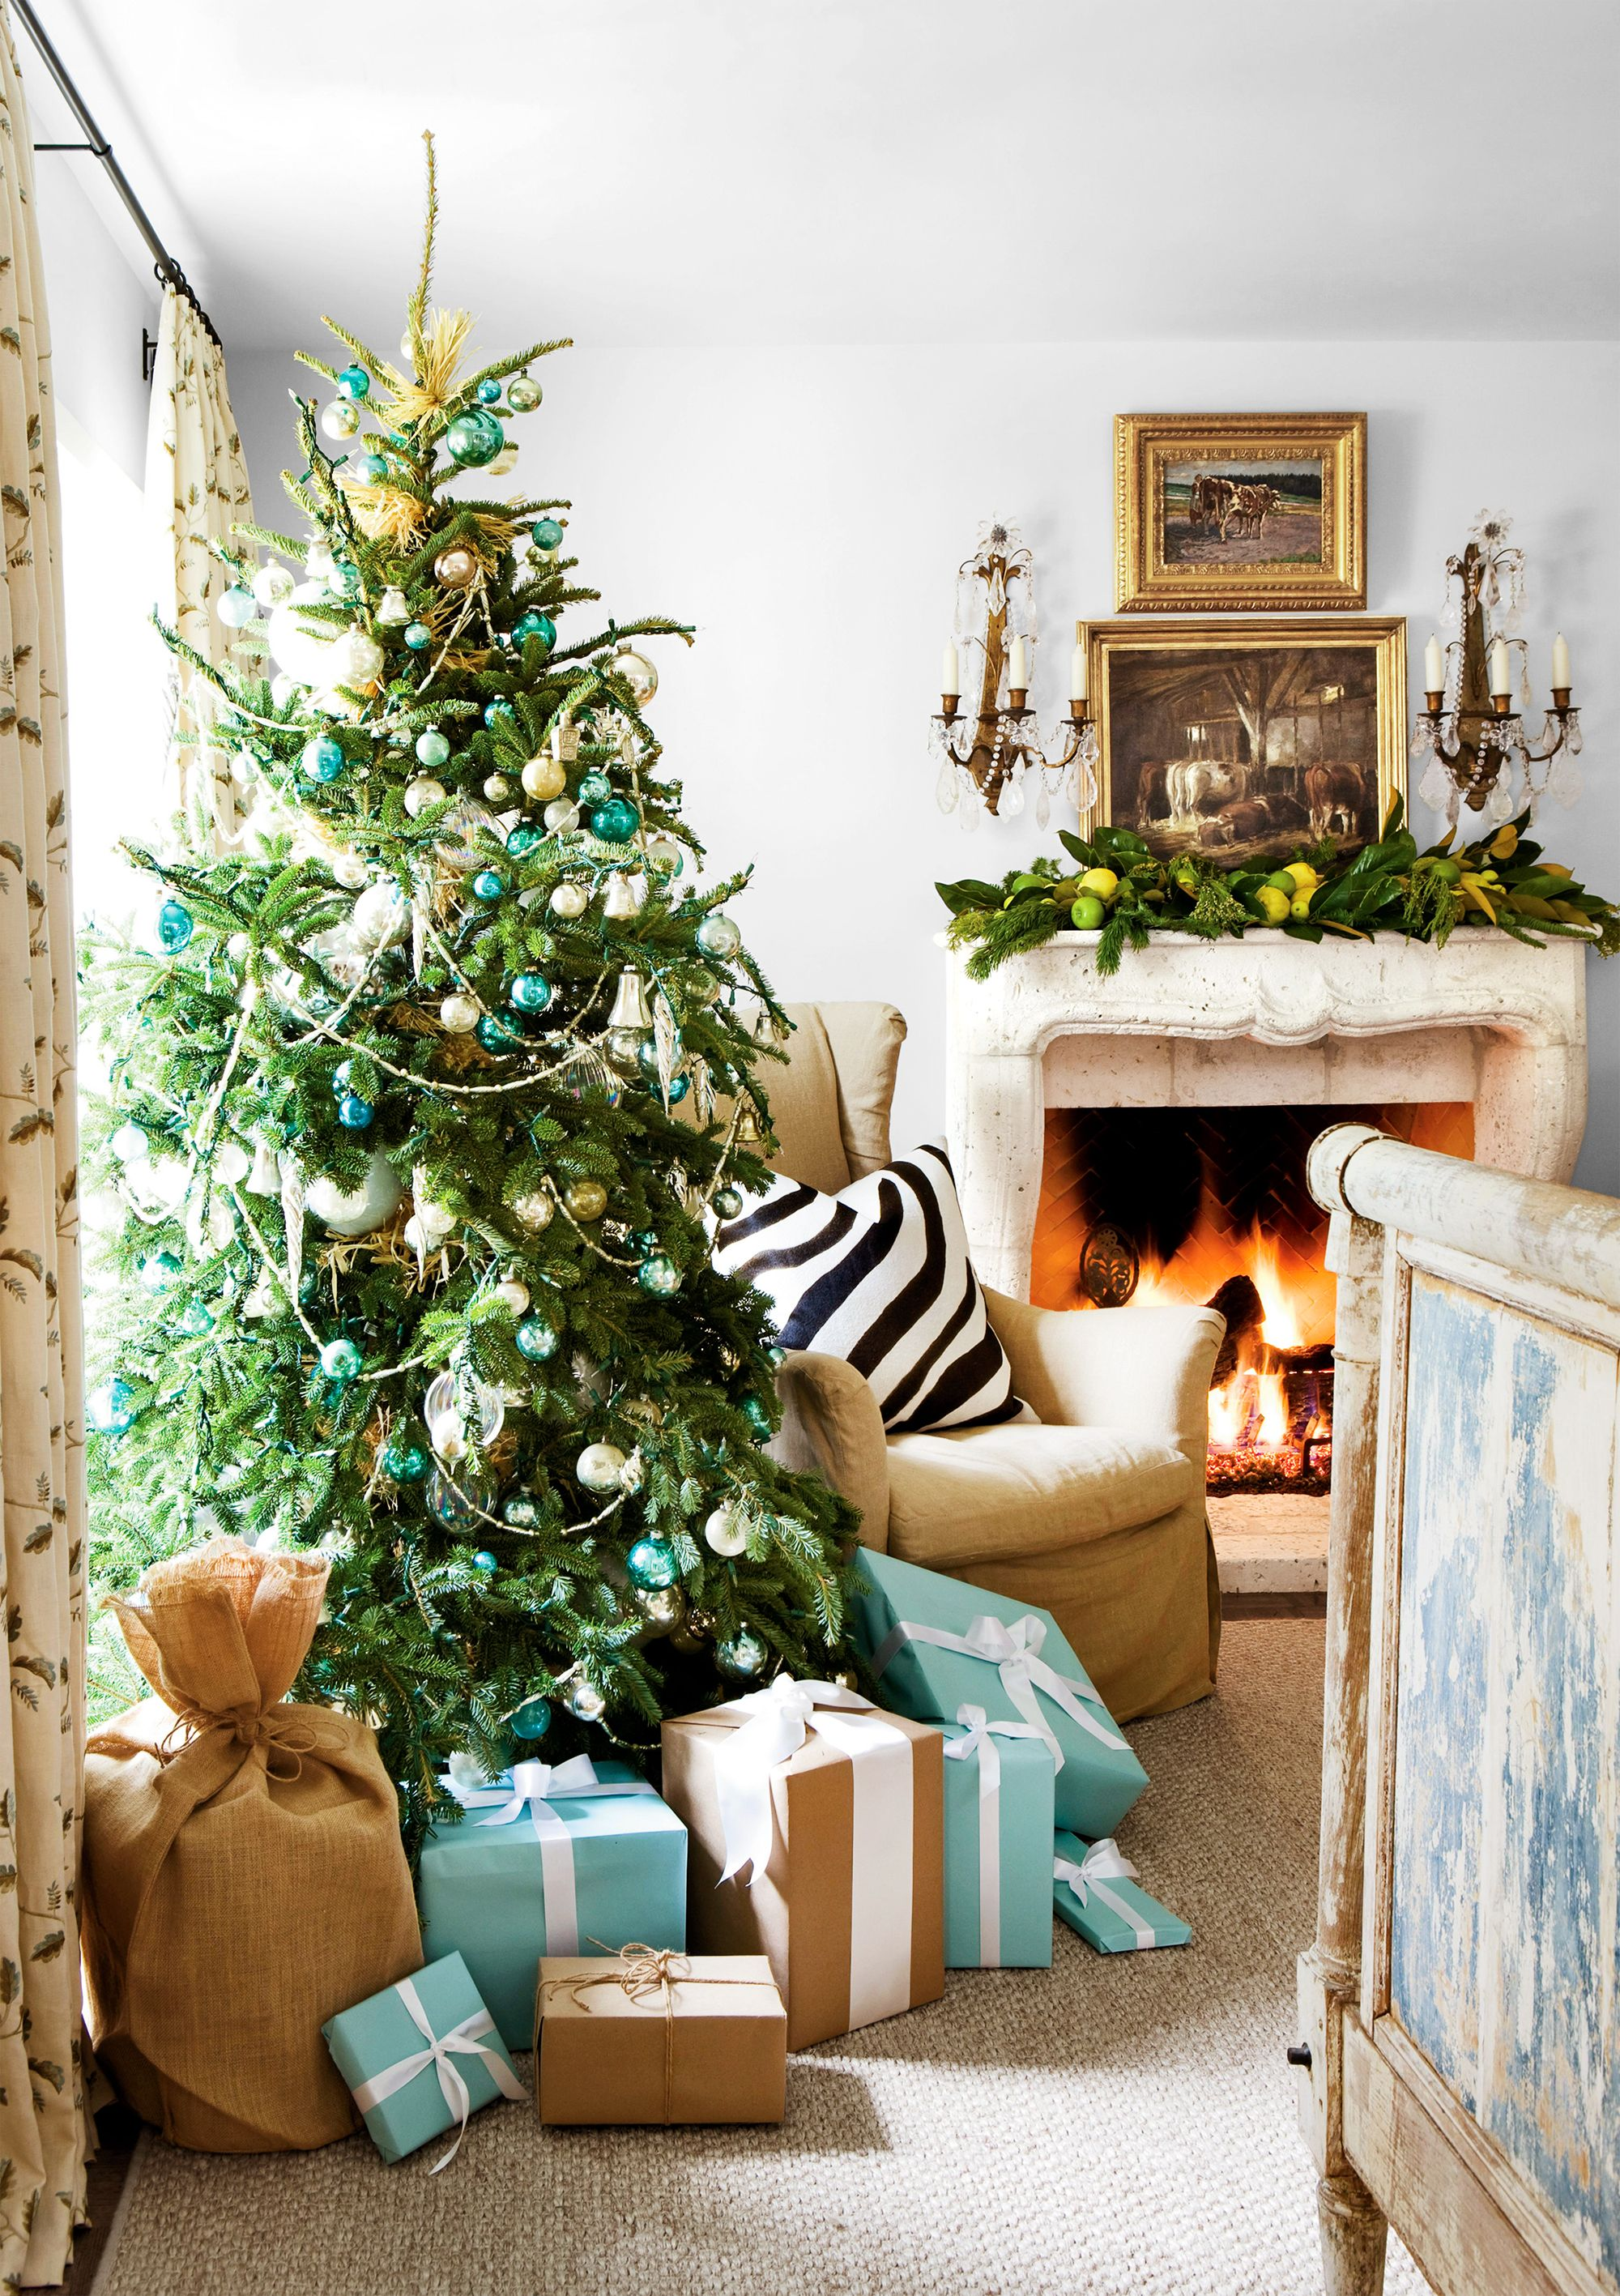 105 Christmas Home Decorating Ideas - Beautiful Christmas Decorations